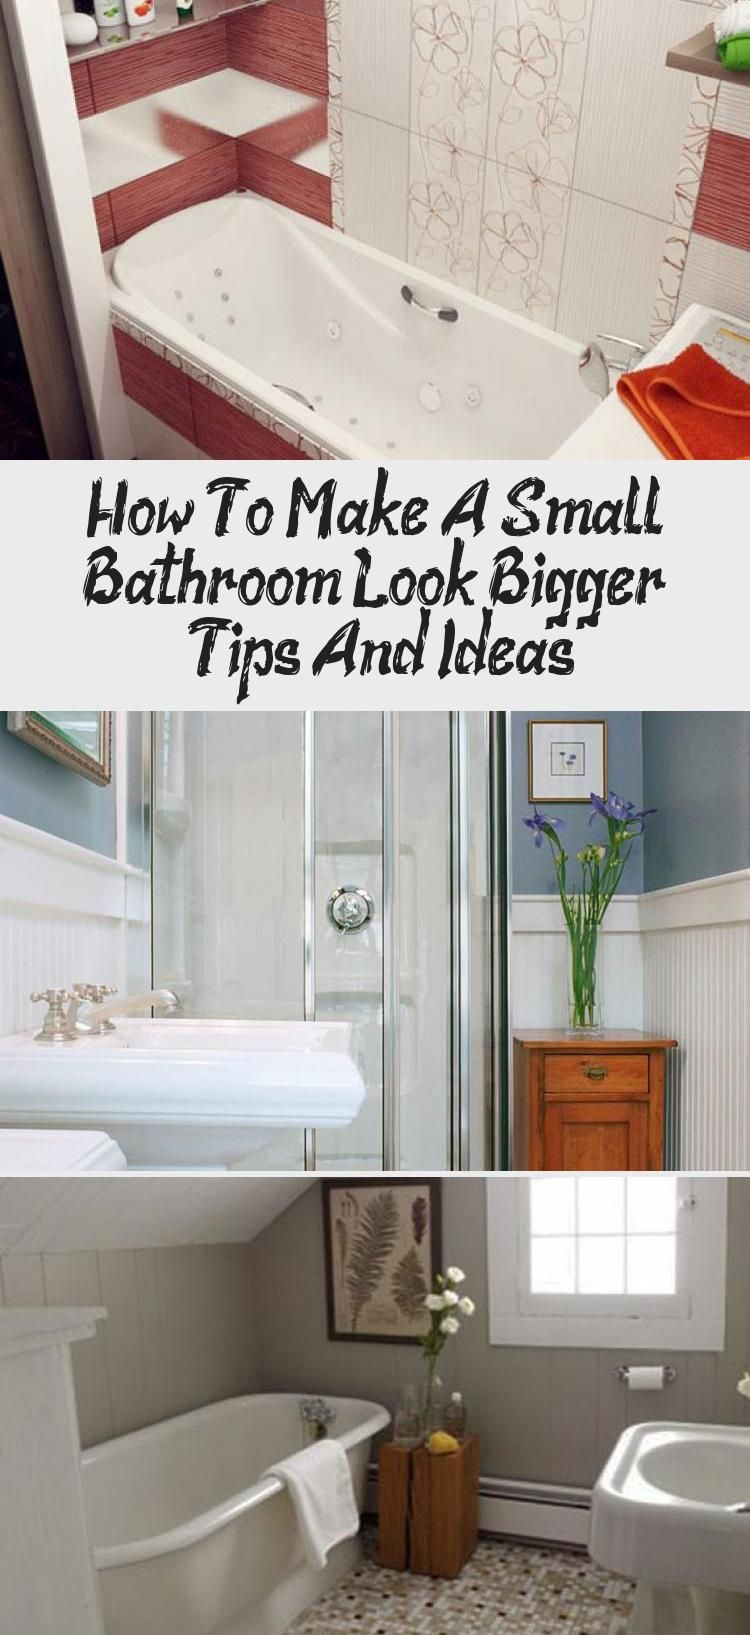 How To Make A Small Bathroom Look Bigger Tips And